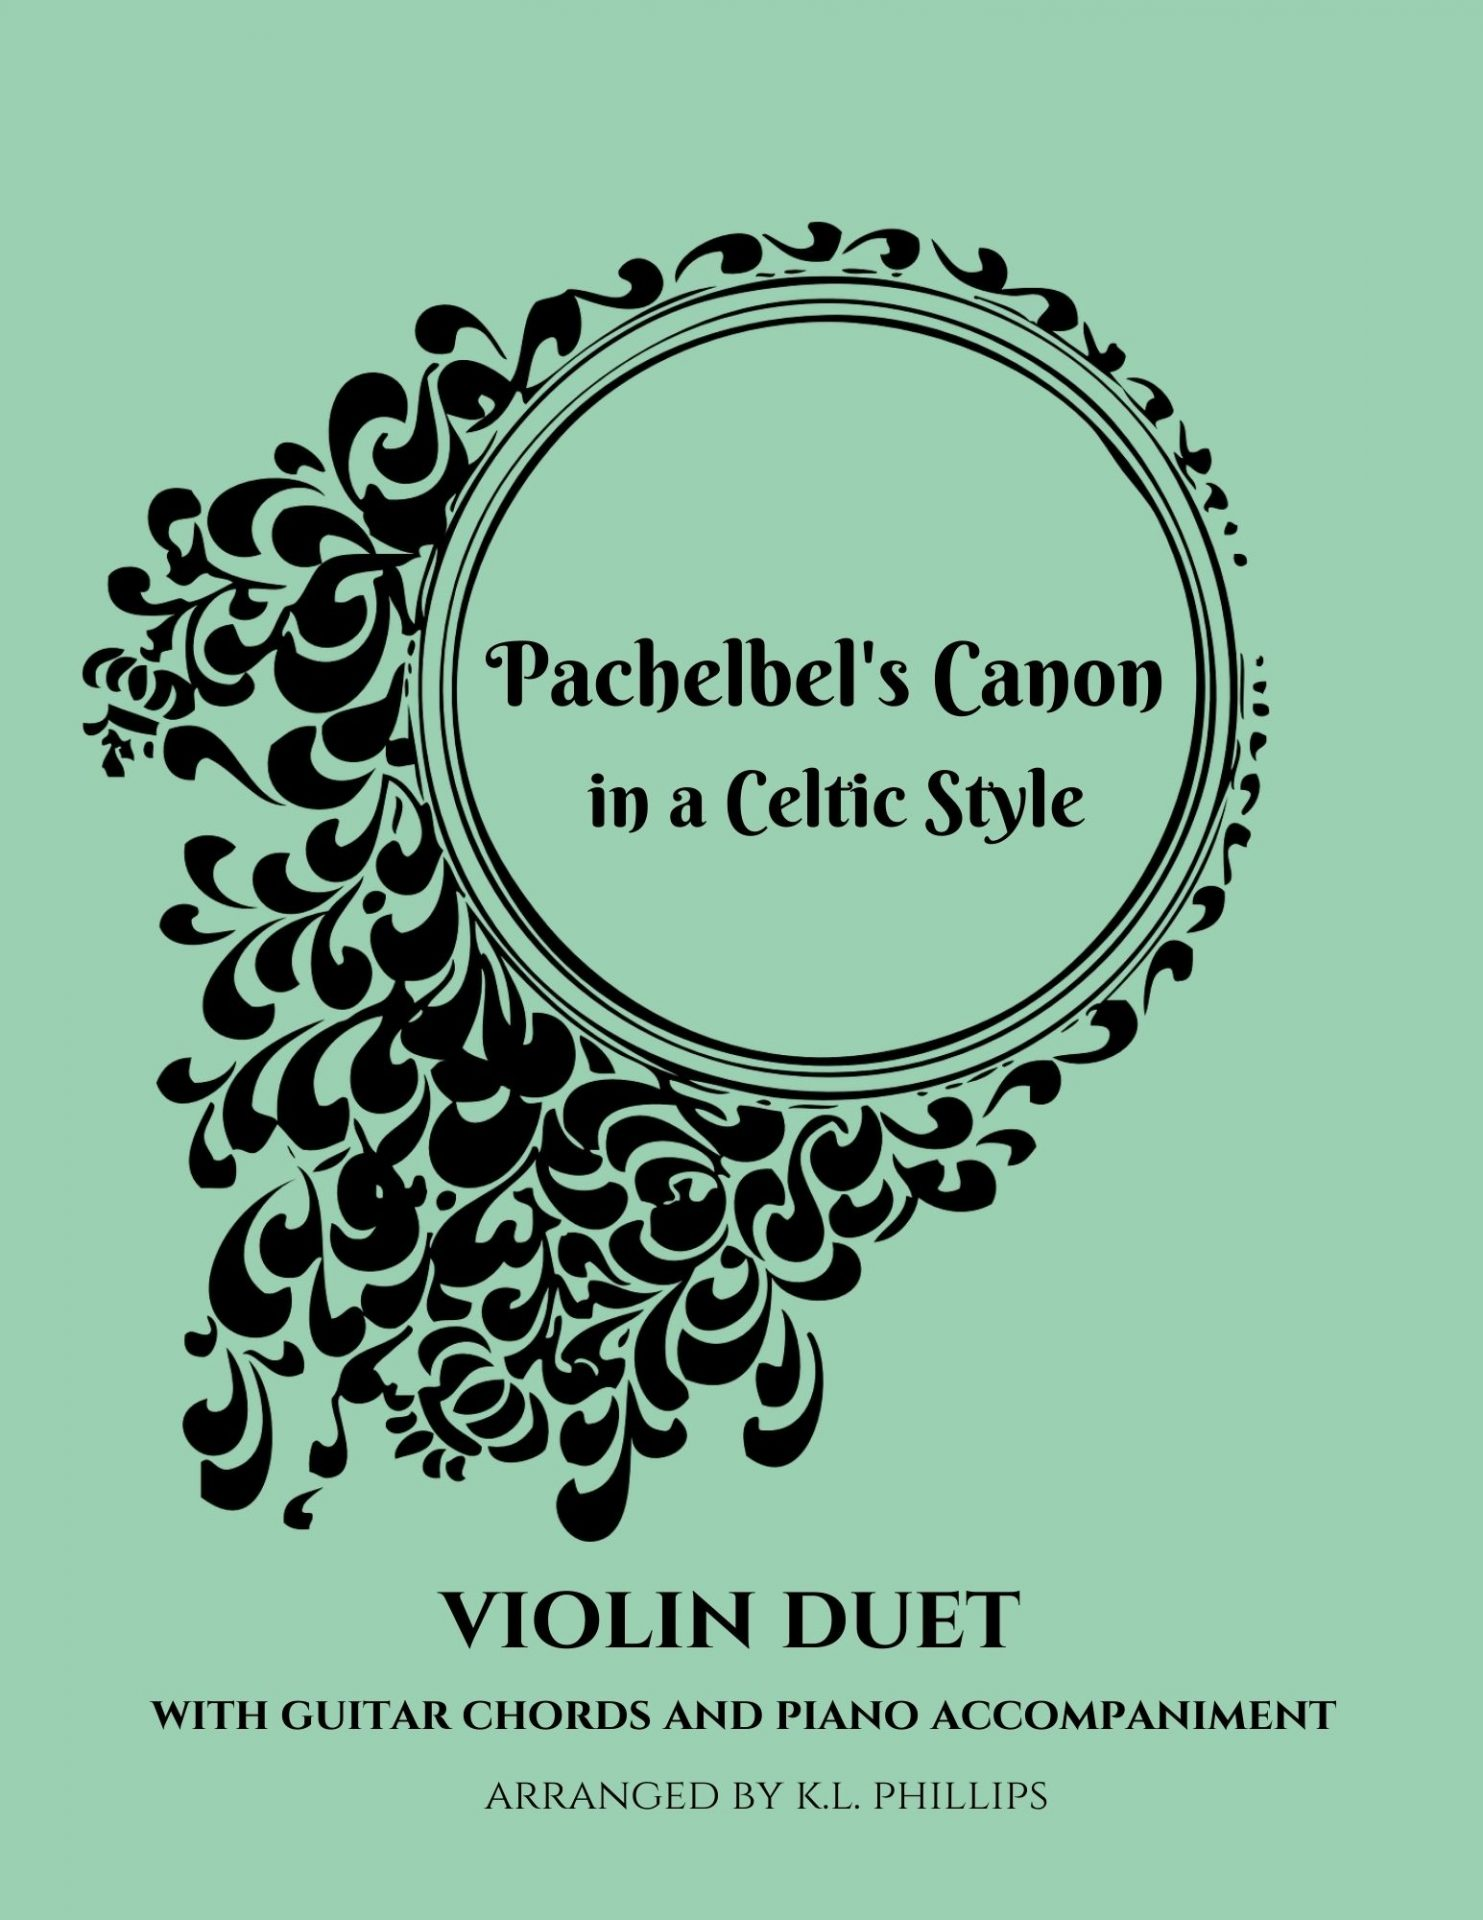 Pachelbel's Canon in a Celtic Style - Violin Duet